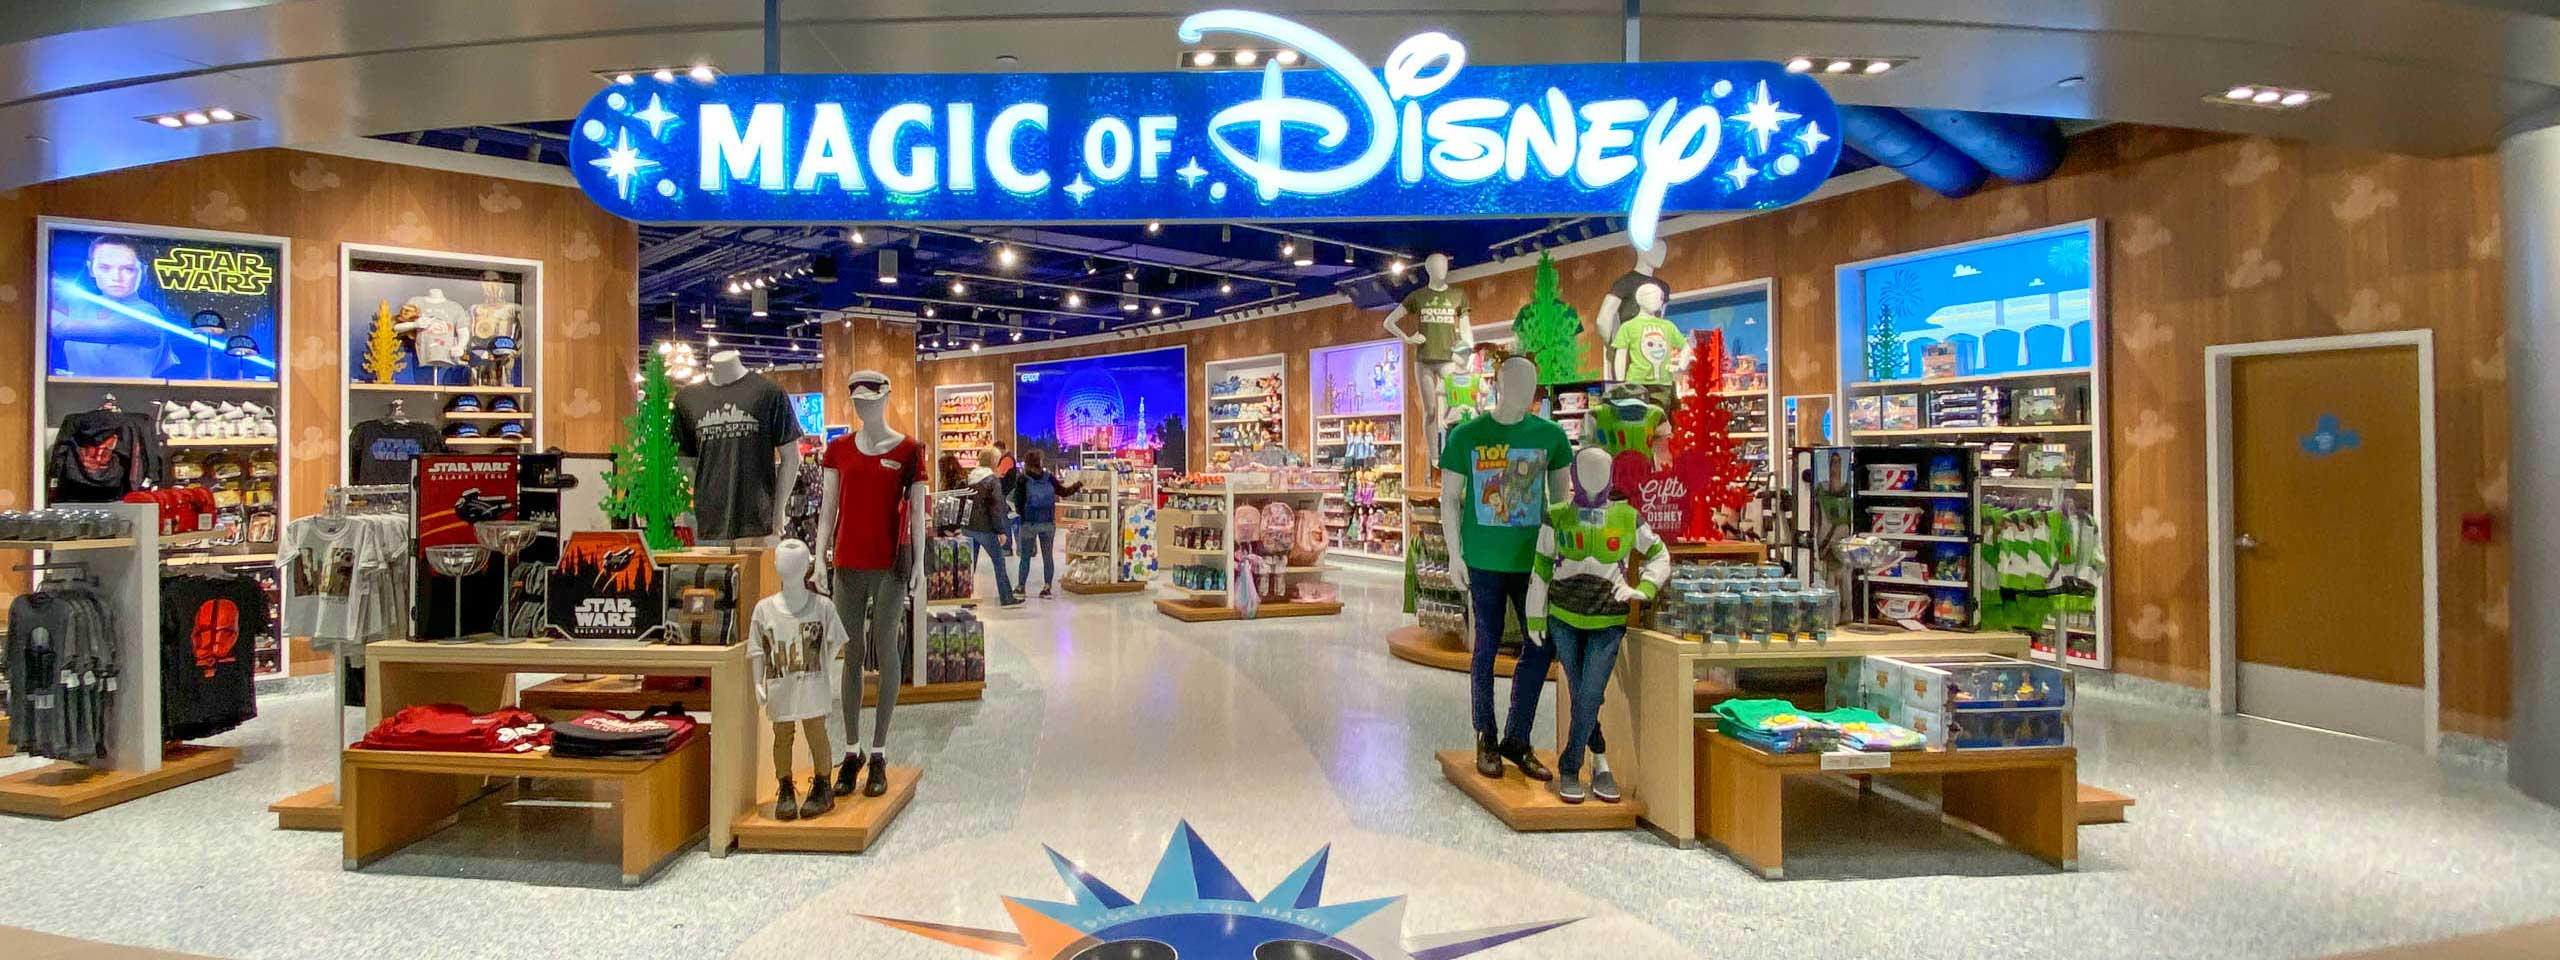 Disney announces it will close 20 percent of its Disney Store locations by the end of 2021